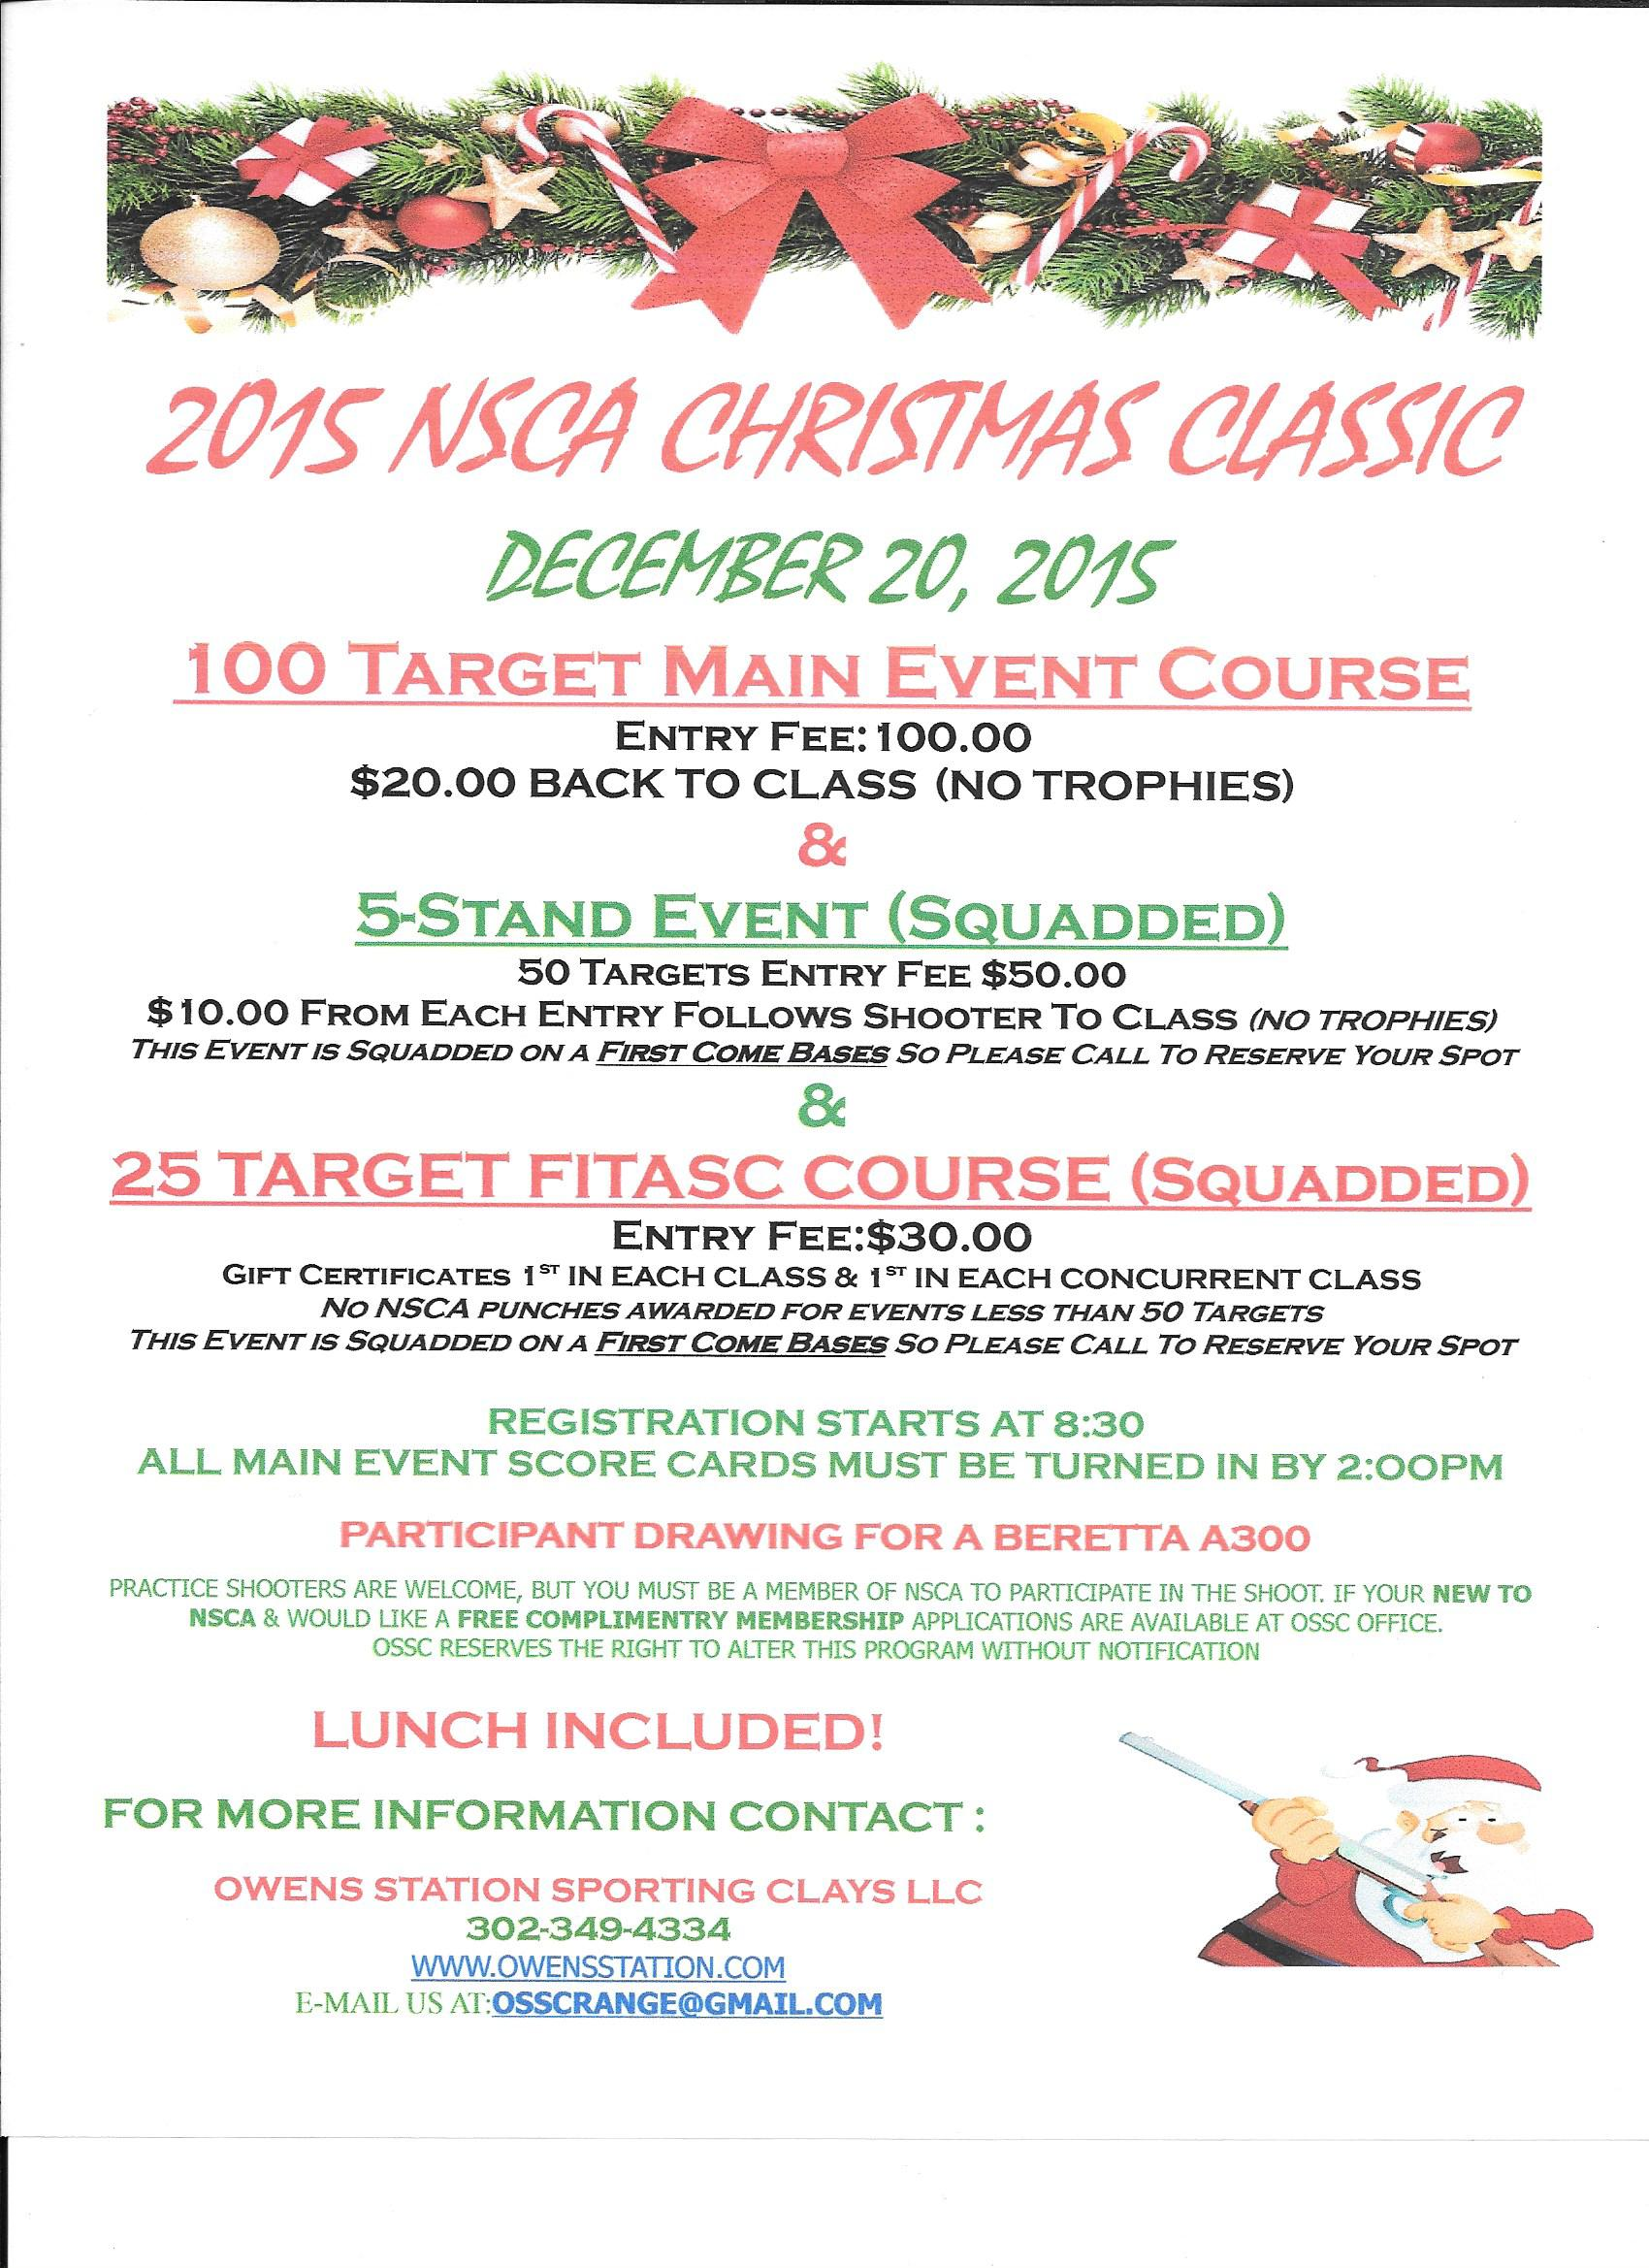 Christmas Classic   Owens Station Sporting Clays